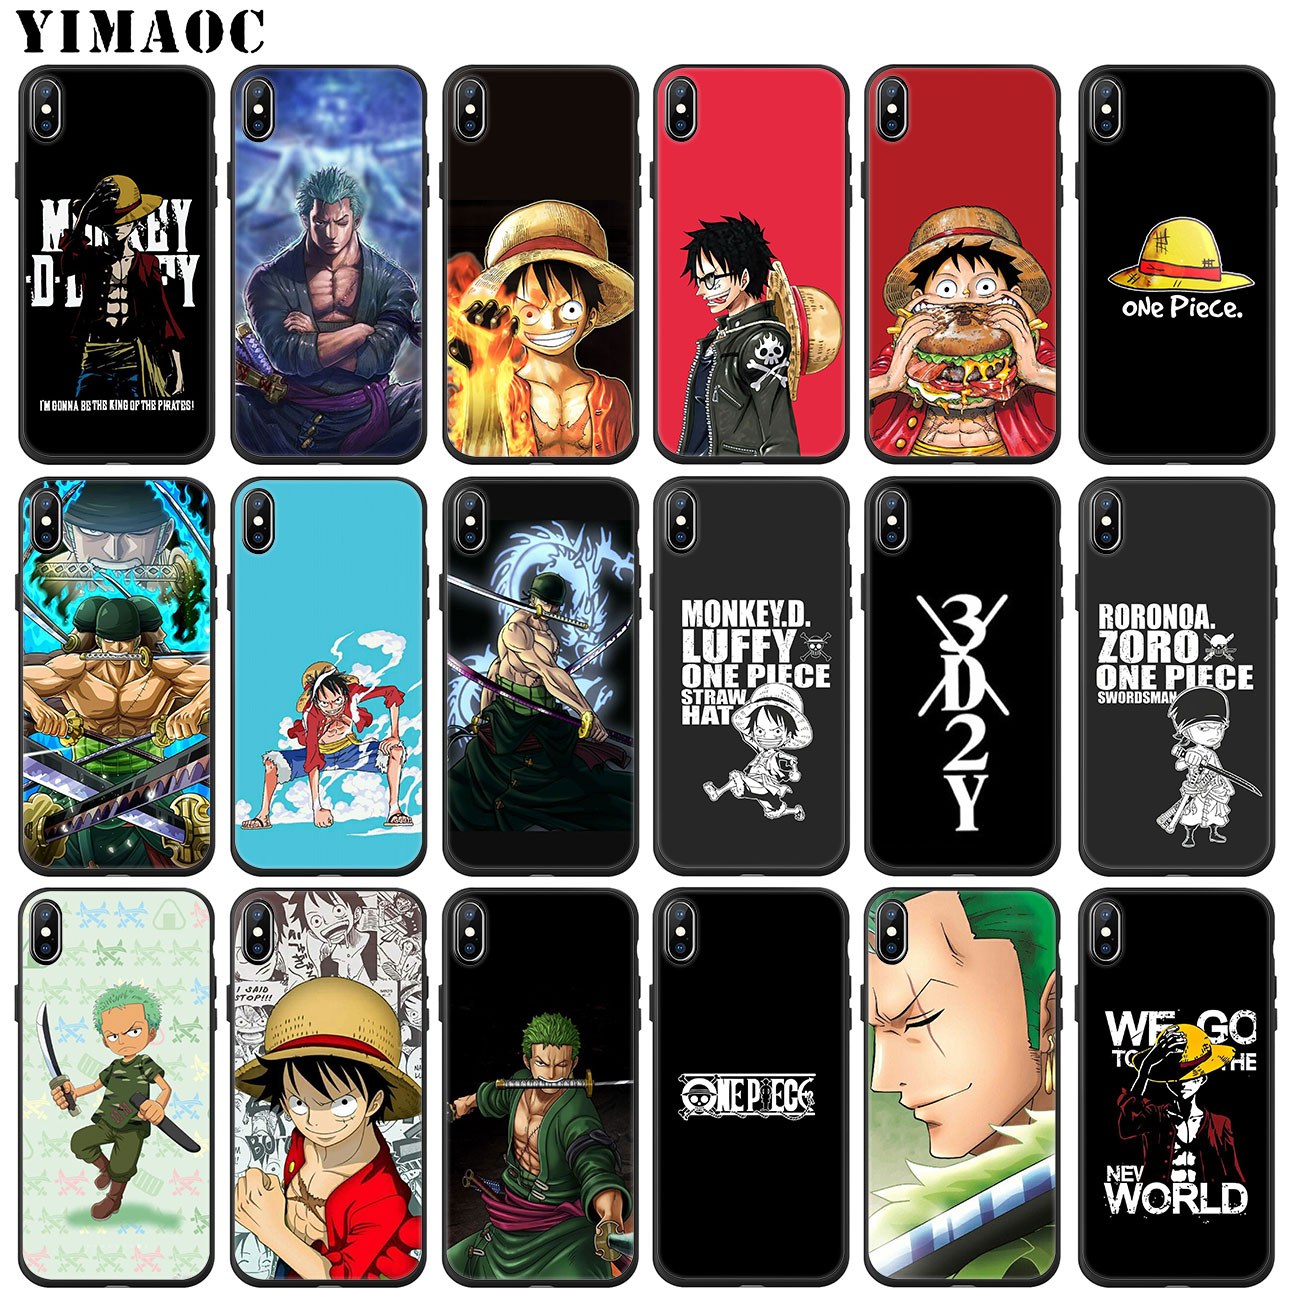 YIMAOC ZORO <font><b>One</b></font> Piece Monkey D Luffy Soft Silicone <font><b>Phone</b></font> Case for iPhone 11 Pro XS Max XR X <font><b>6</b></font> 6S 7 8 <font><b>Plus</b></font> 5 5S SE 10 Black <font><b>Cover</b></font> image